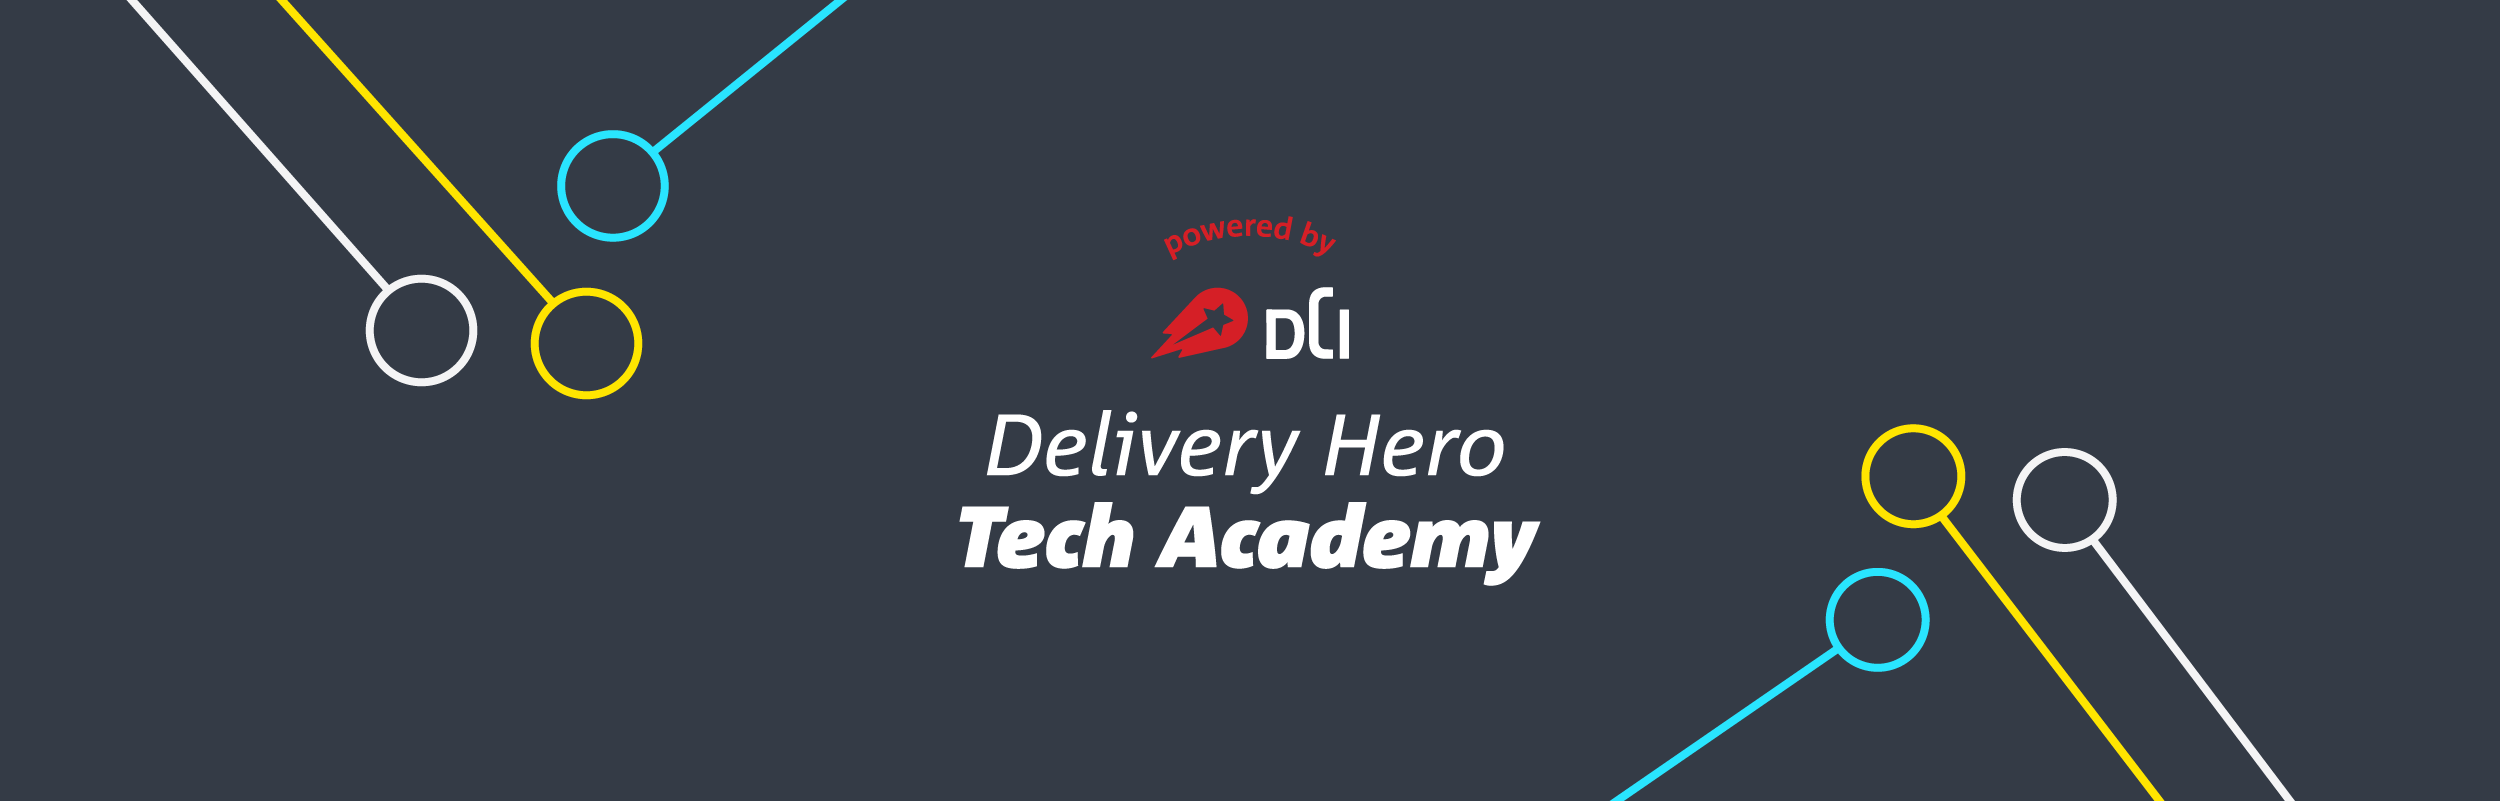 Delivery Hero Tech Academy